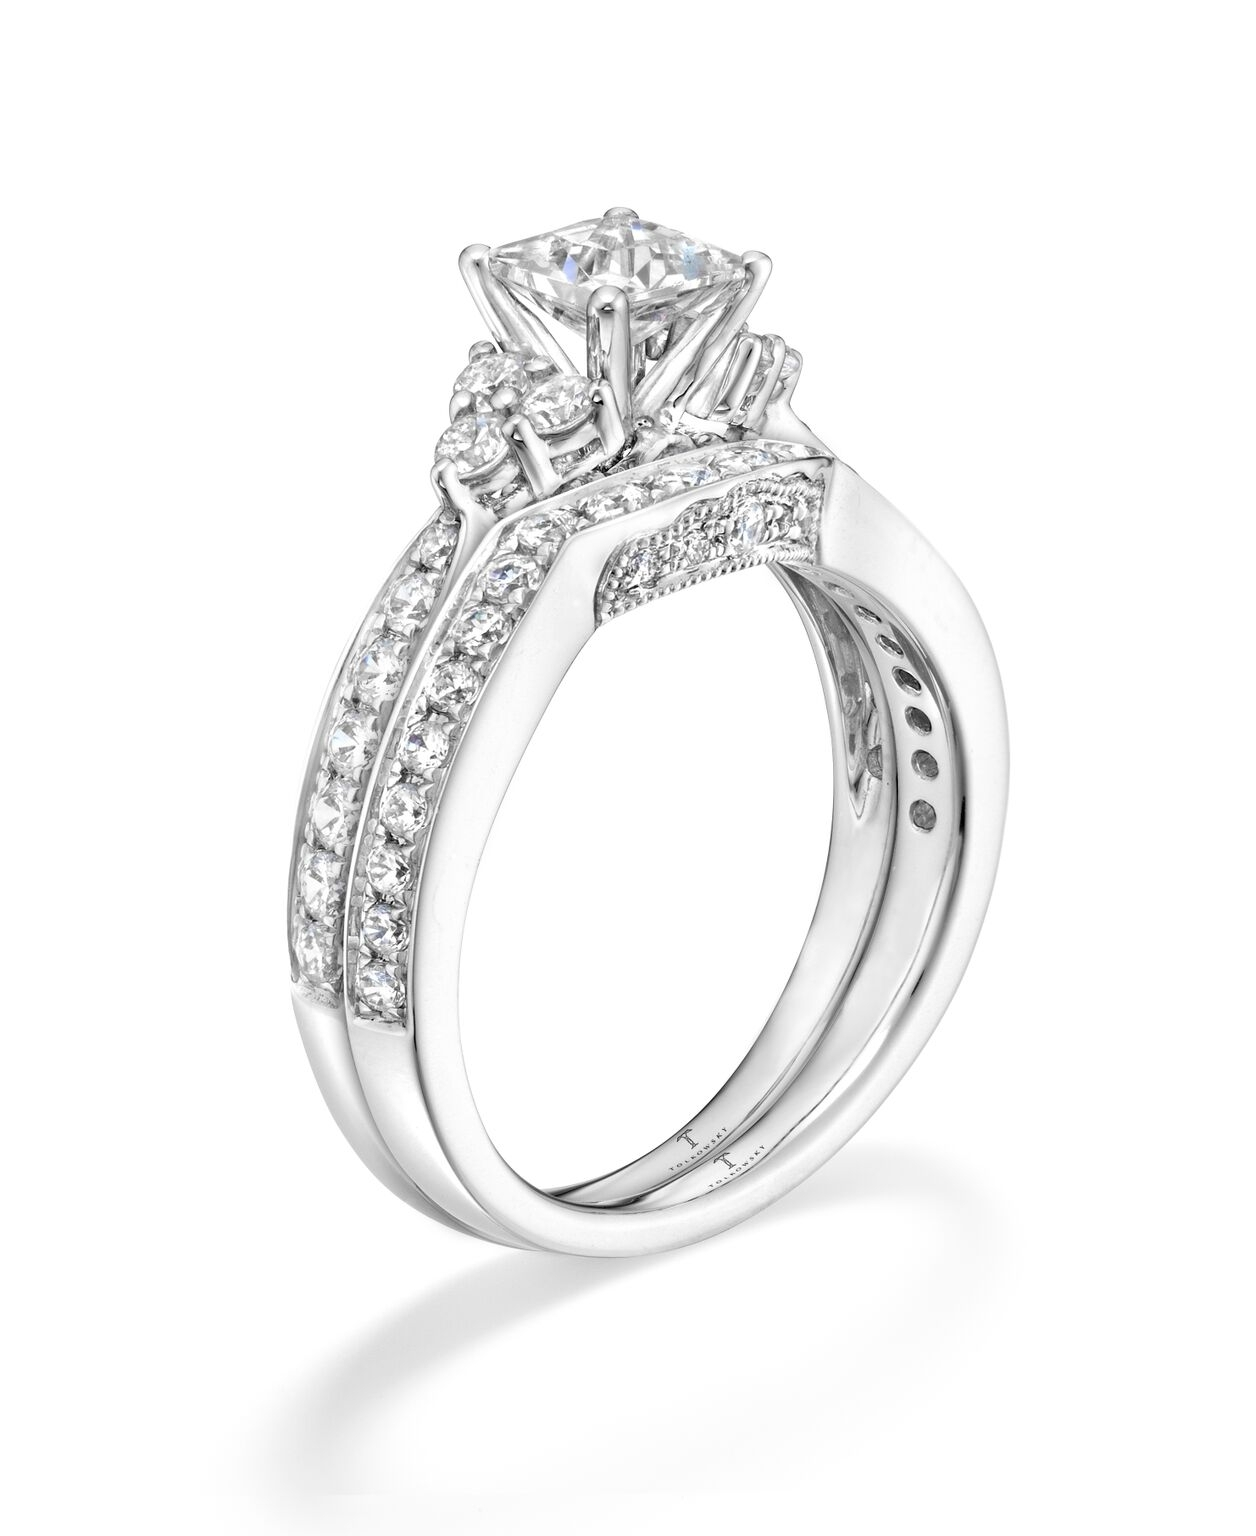 Tolkowsky Diamond Bridal Set In 14K White Gold (View 15 of 15)